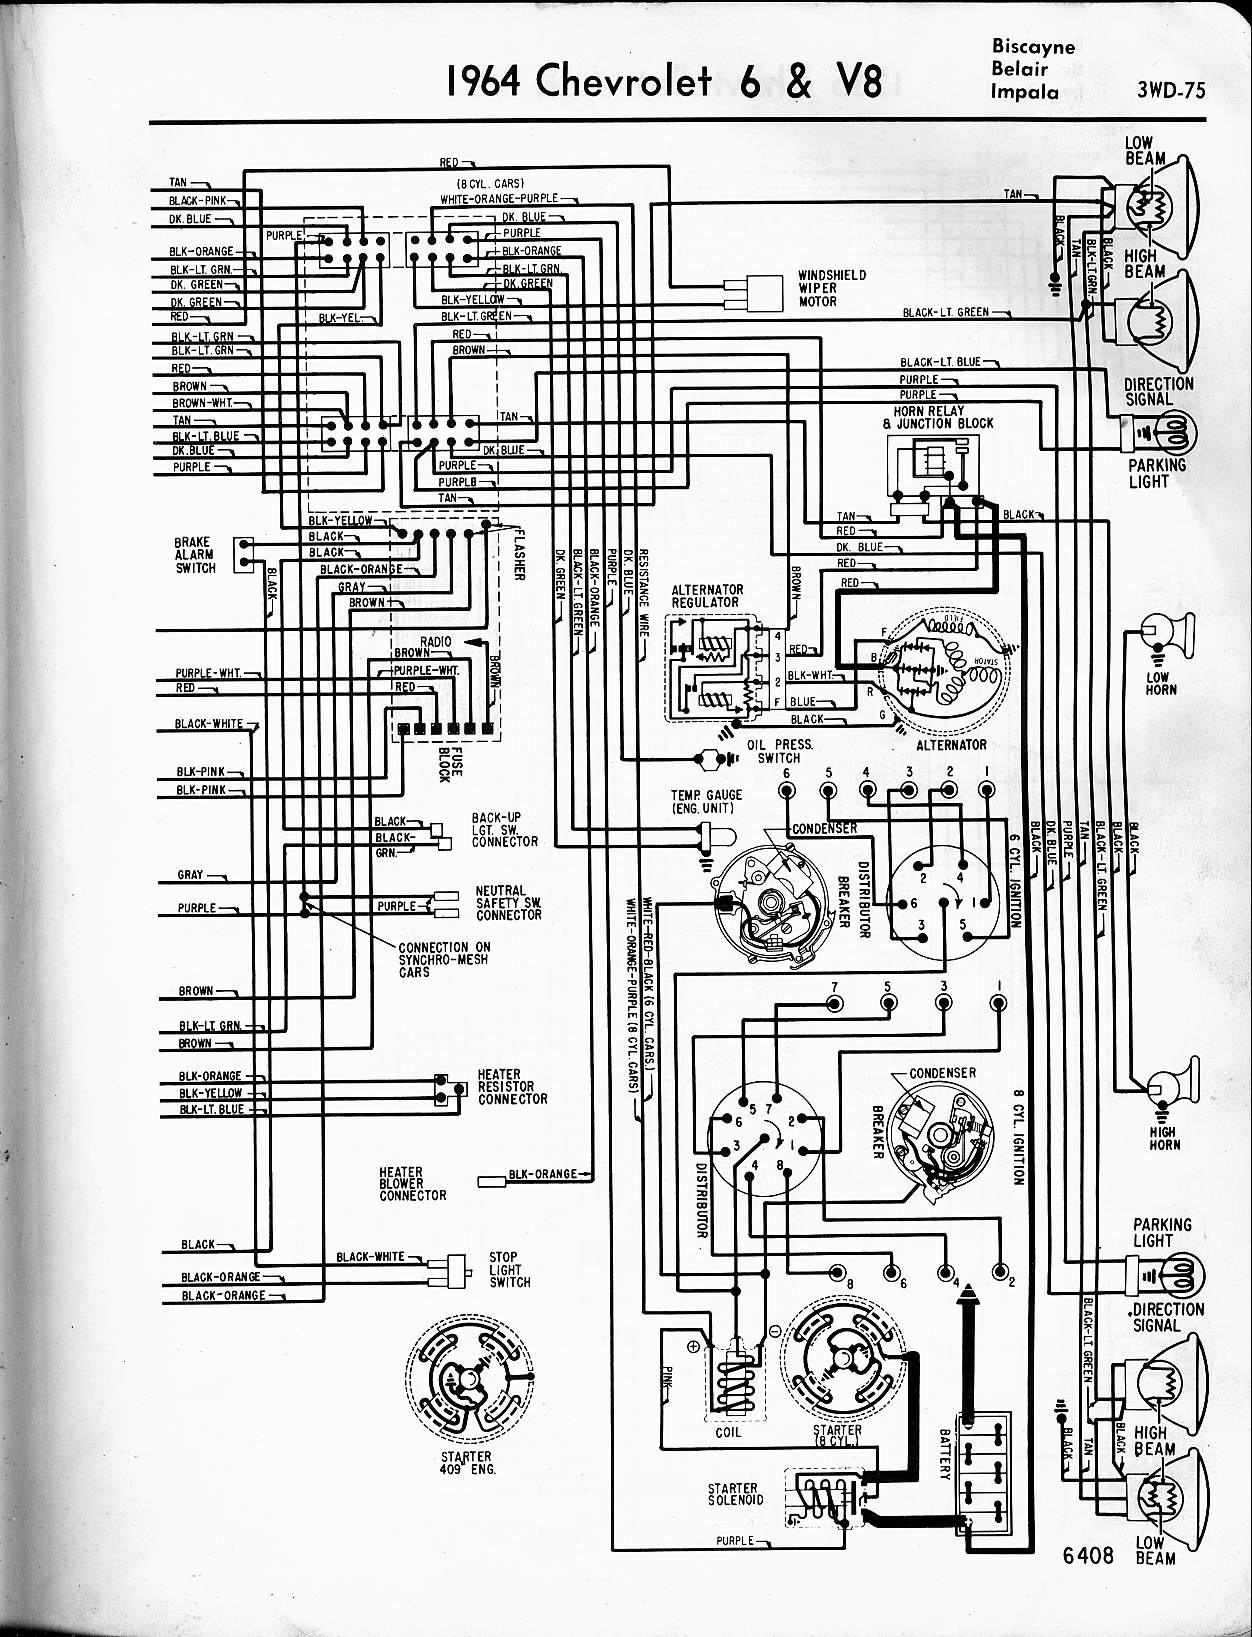 1960 c10 wiring diagram wiring diagram1964 chevy pickup alternator wiring diagram aa purebuild co \\u2022